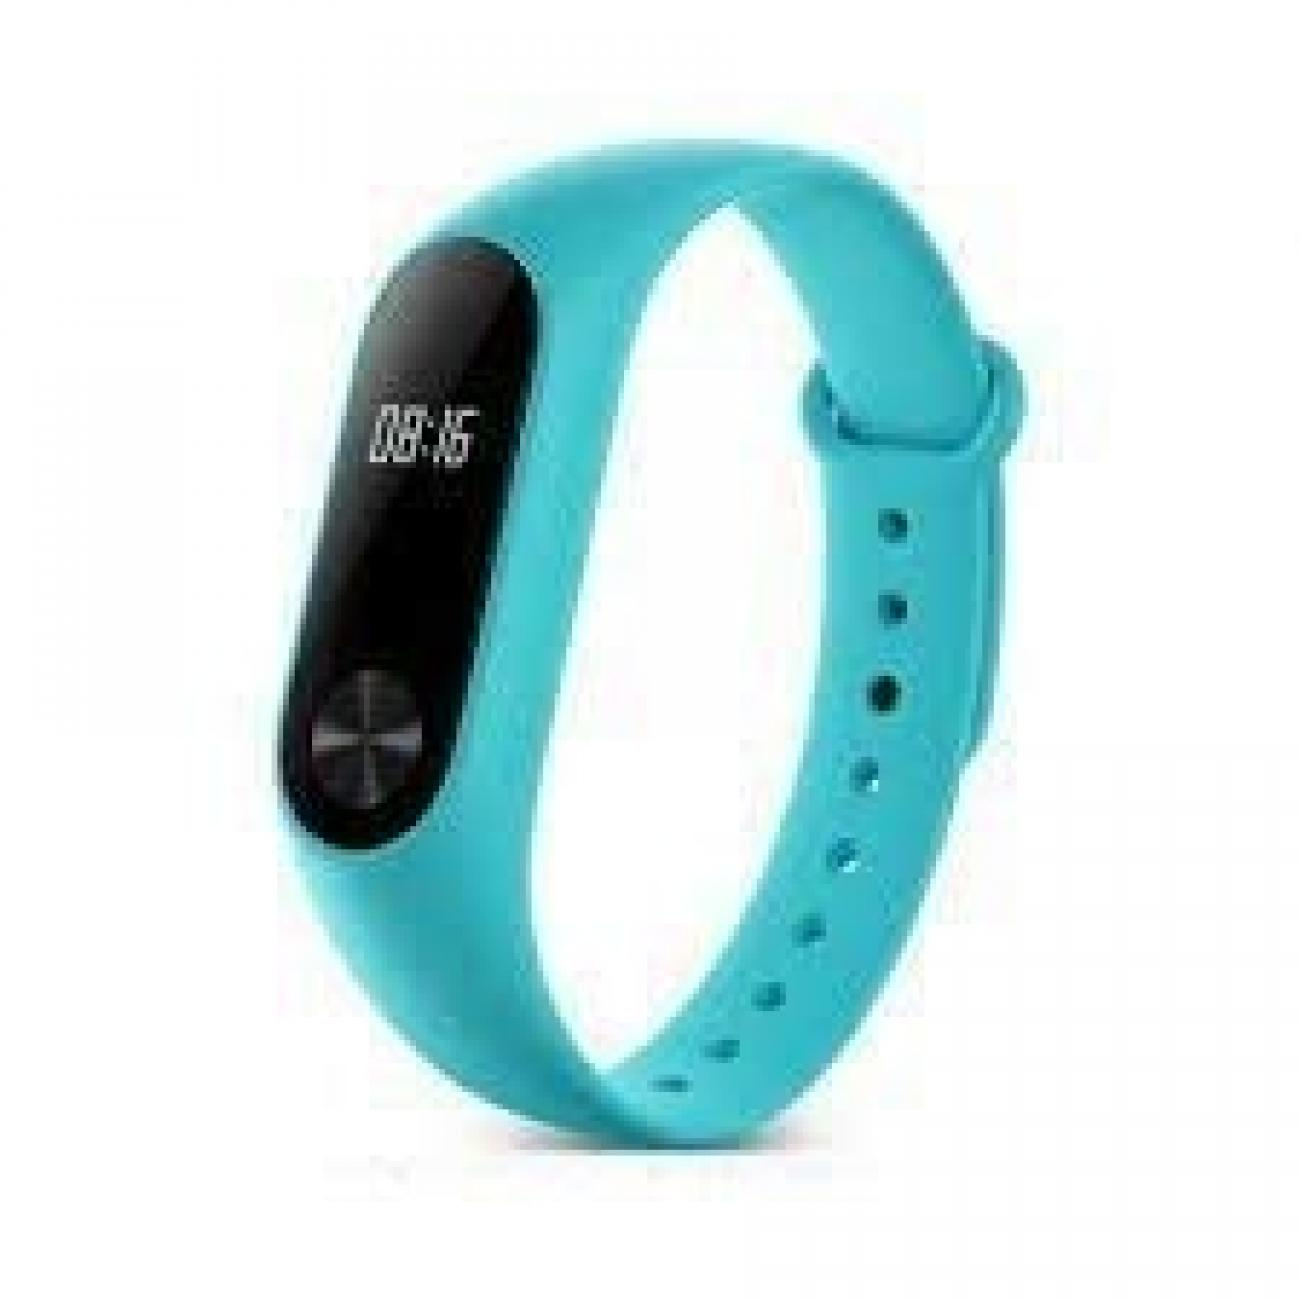 M2 Smart Gyming Sports Fitness Band